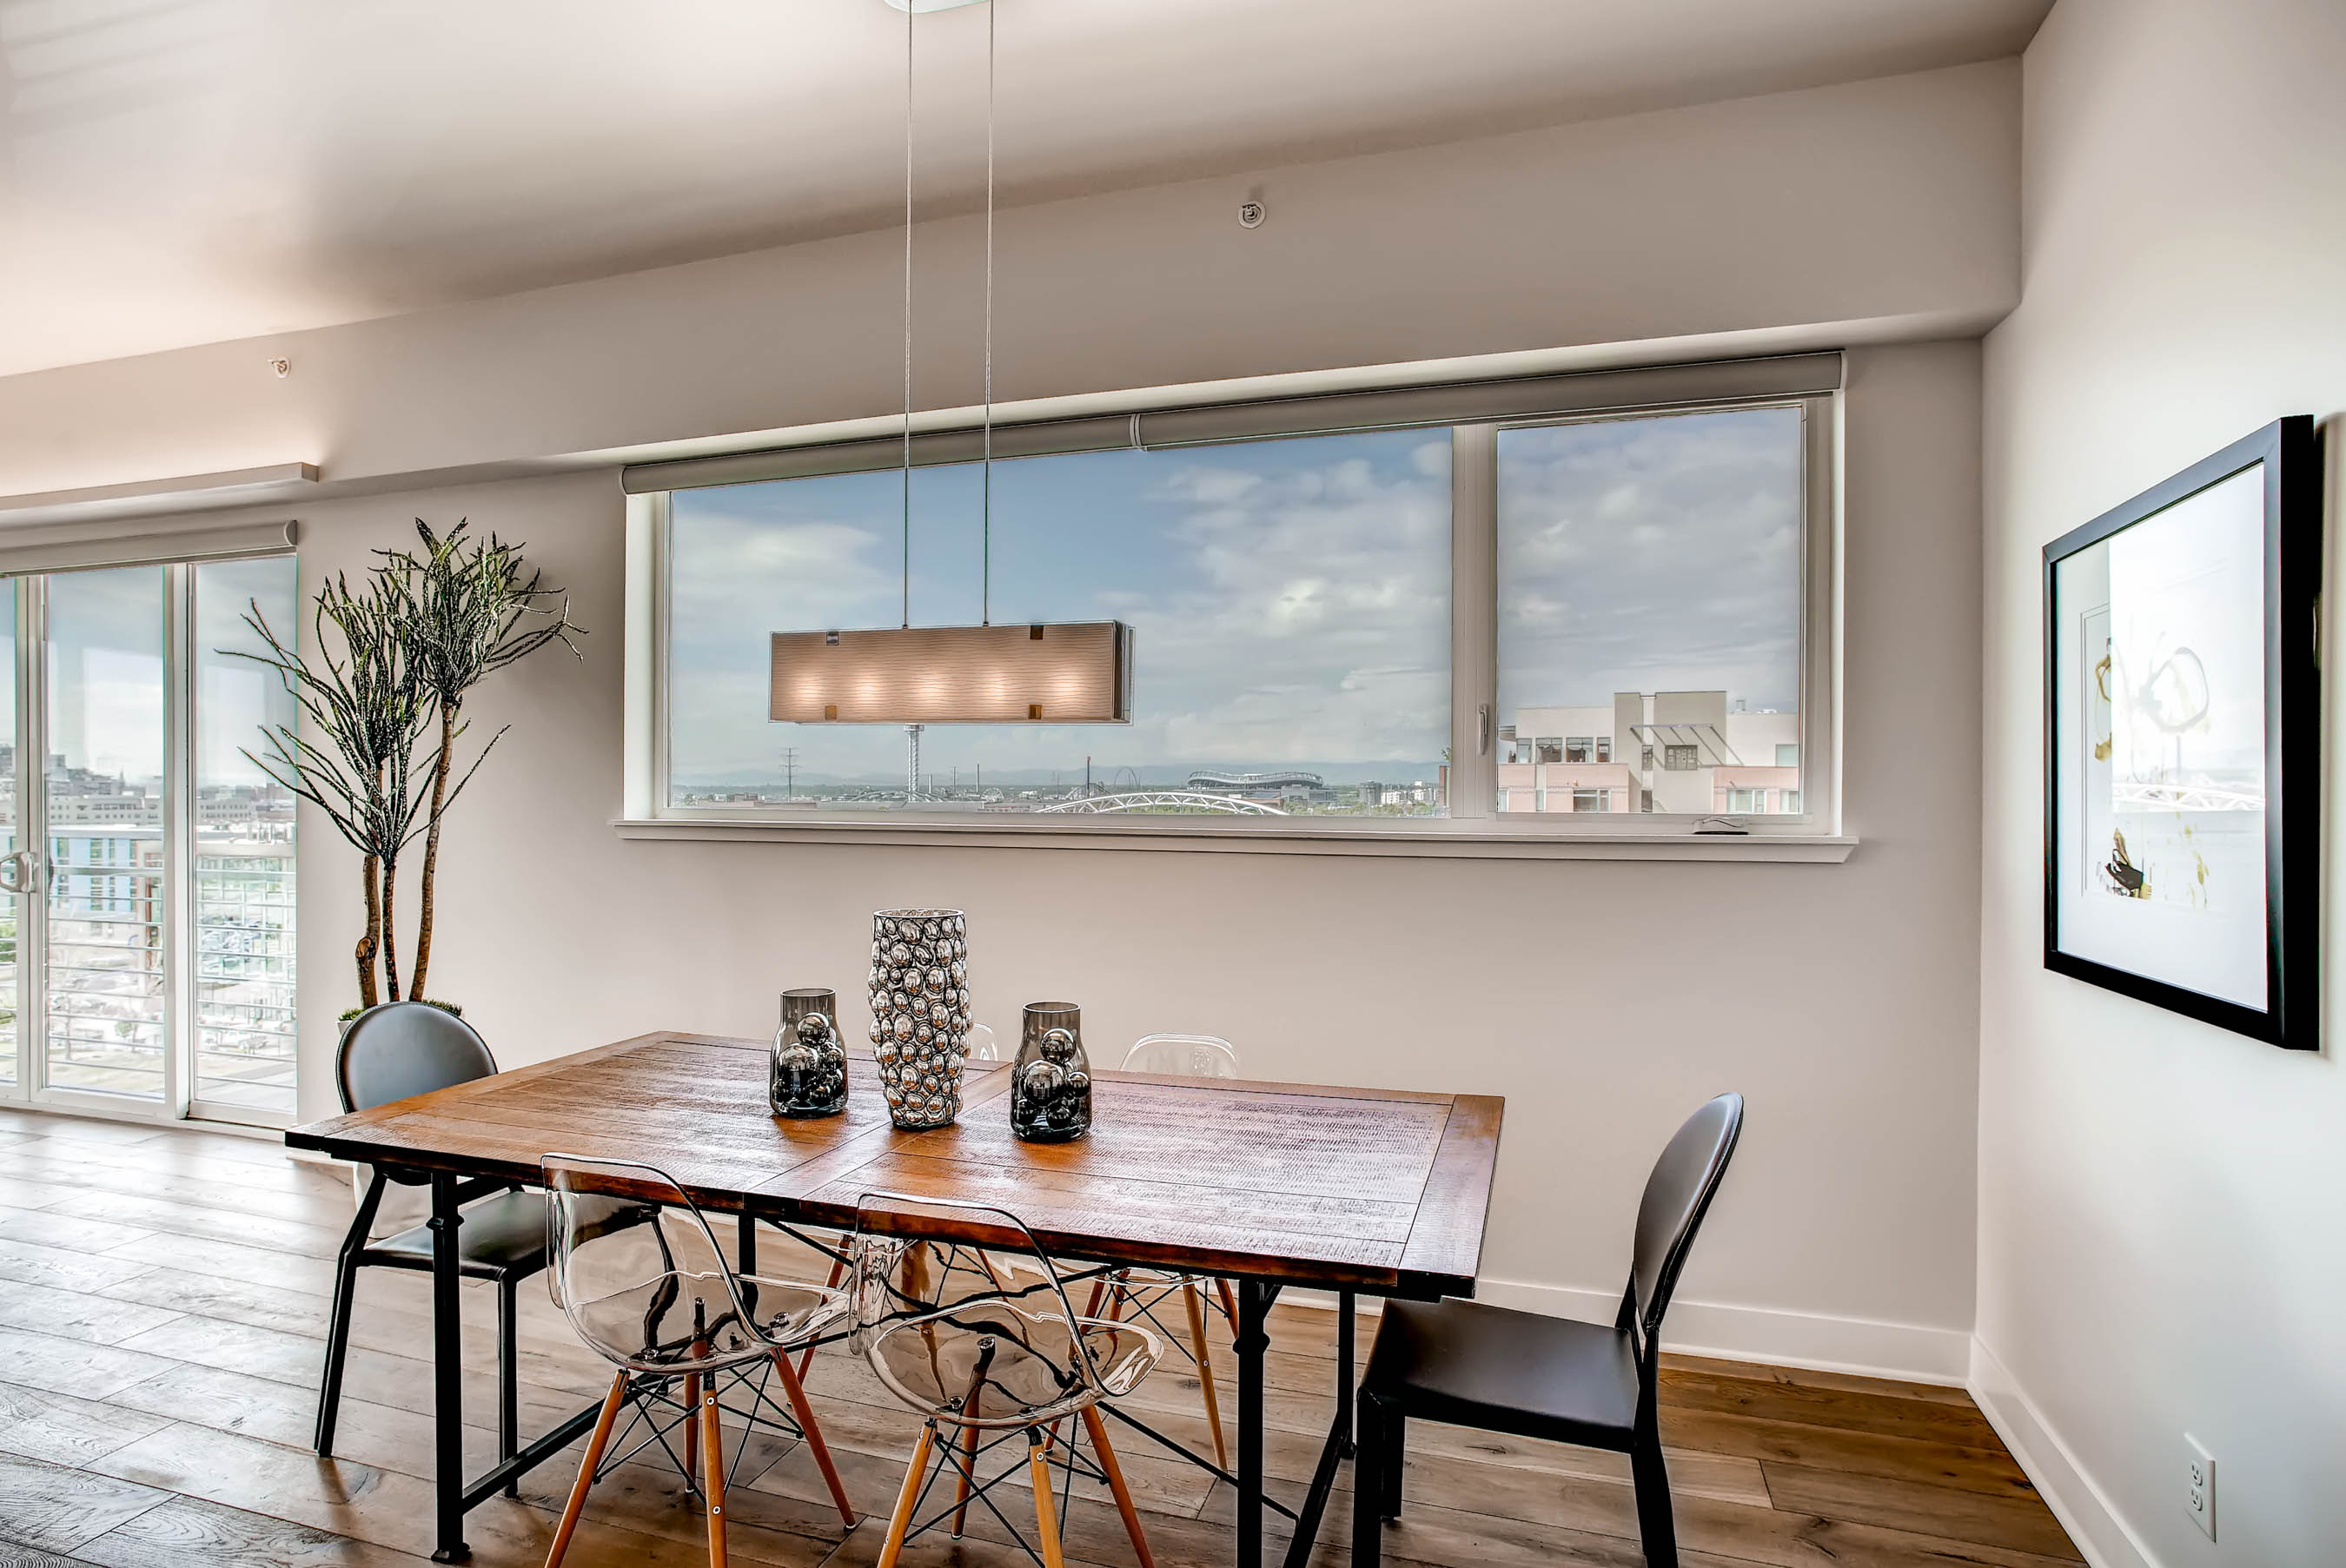 Horizontal Sliding window over dining room table